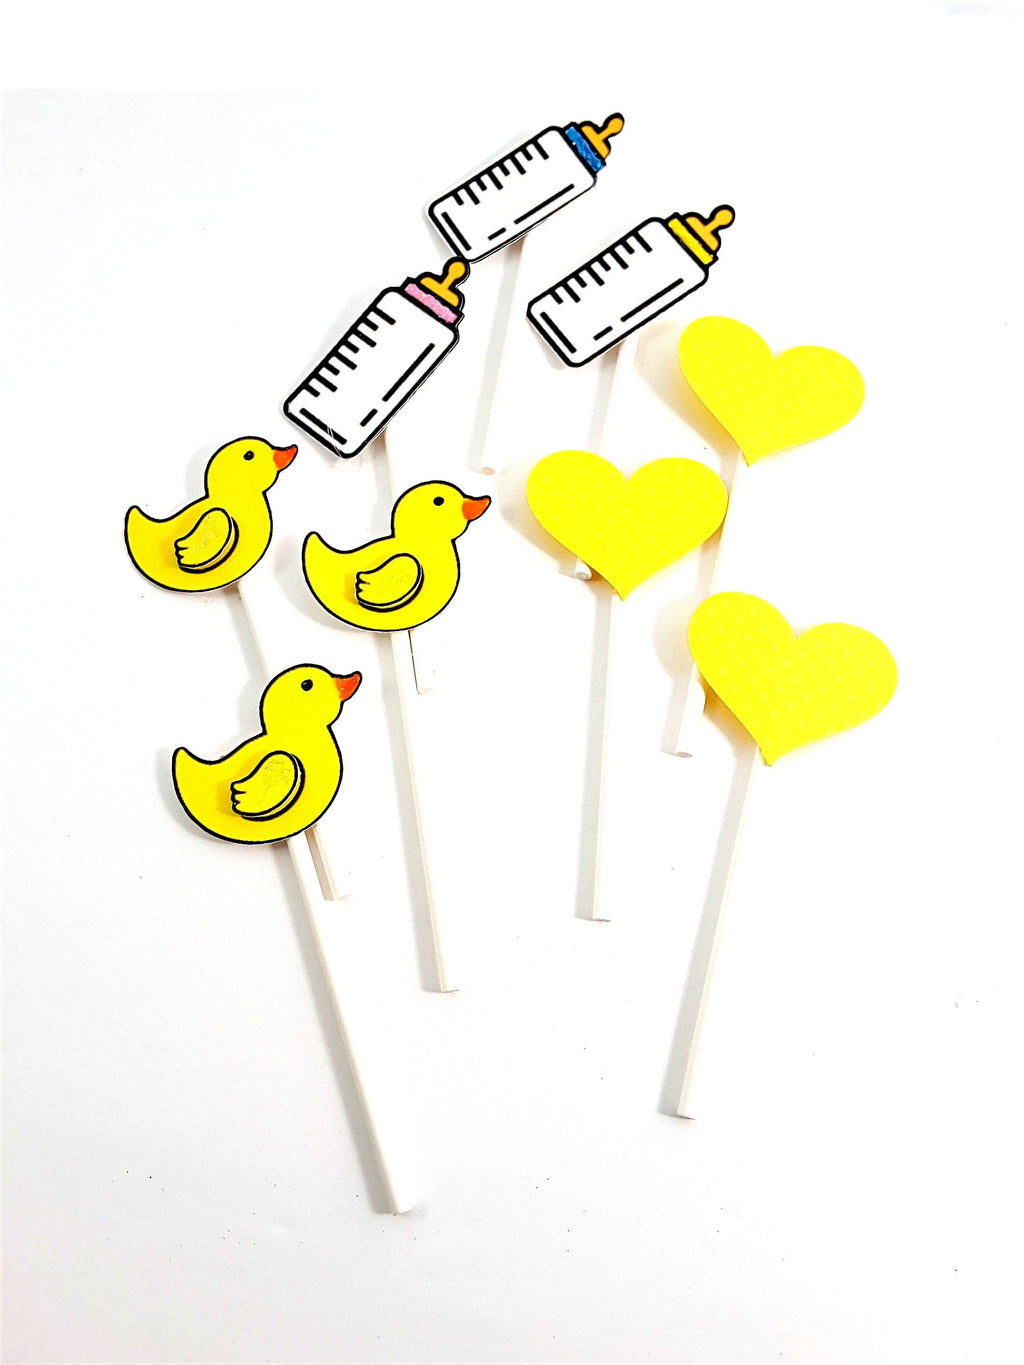 Personalized Baby Shower Cupcake Toppers with baby bottle, yellow duckie and heart